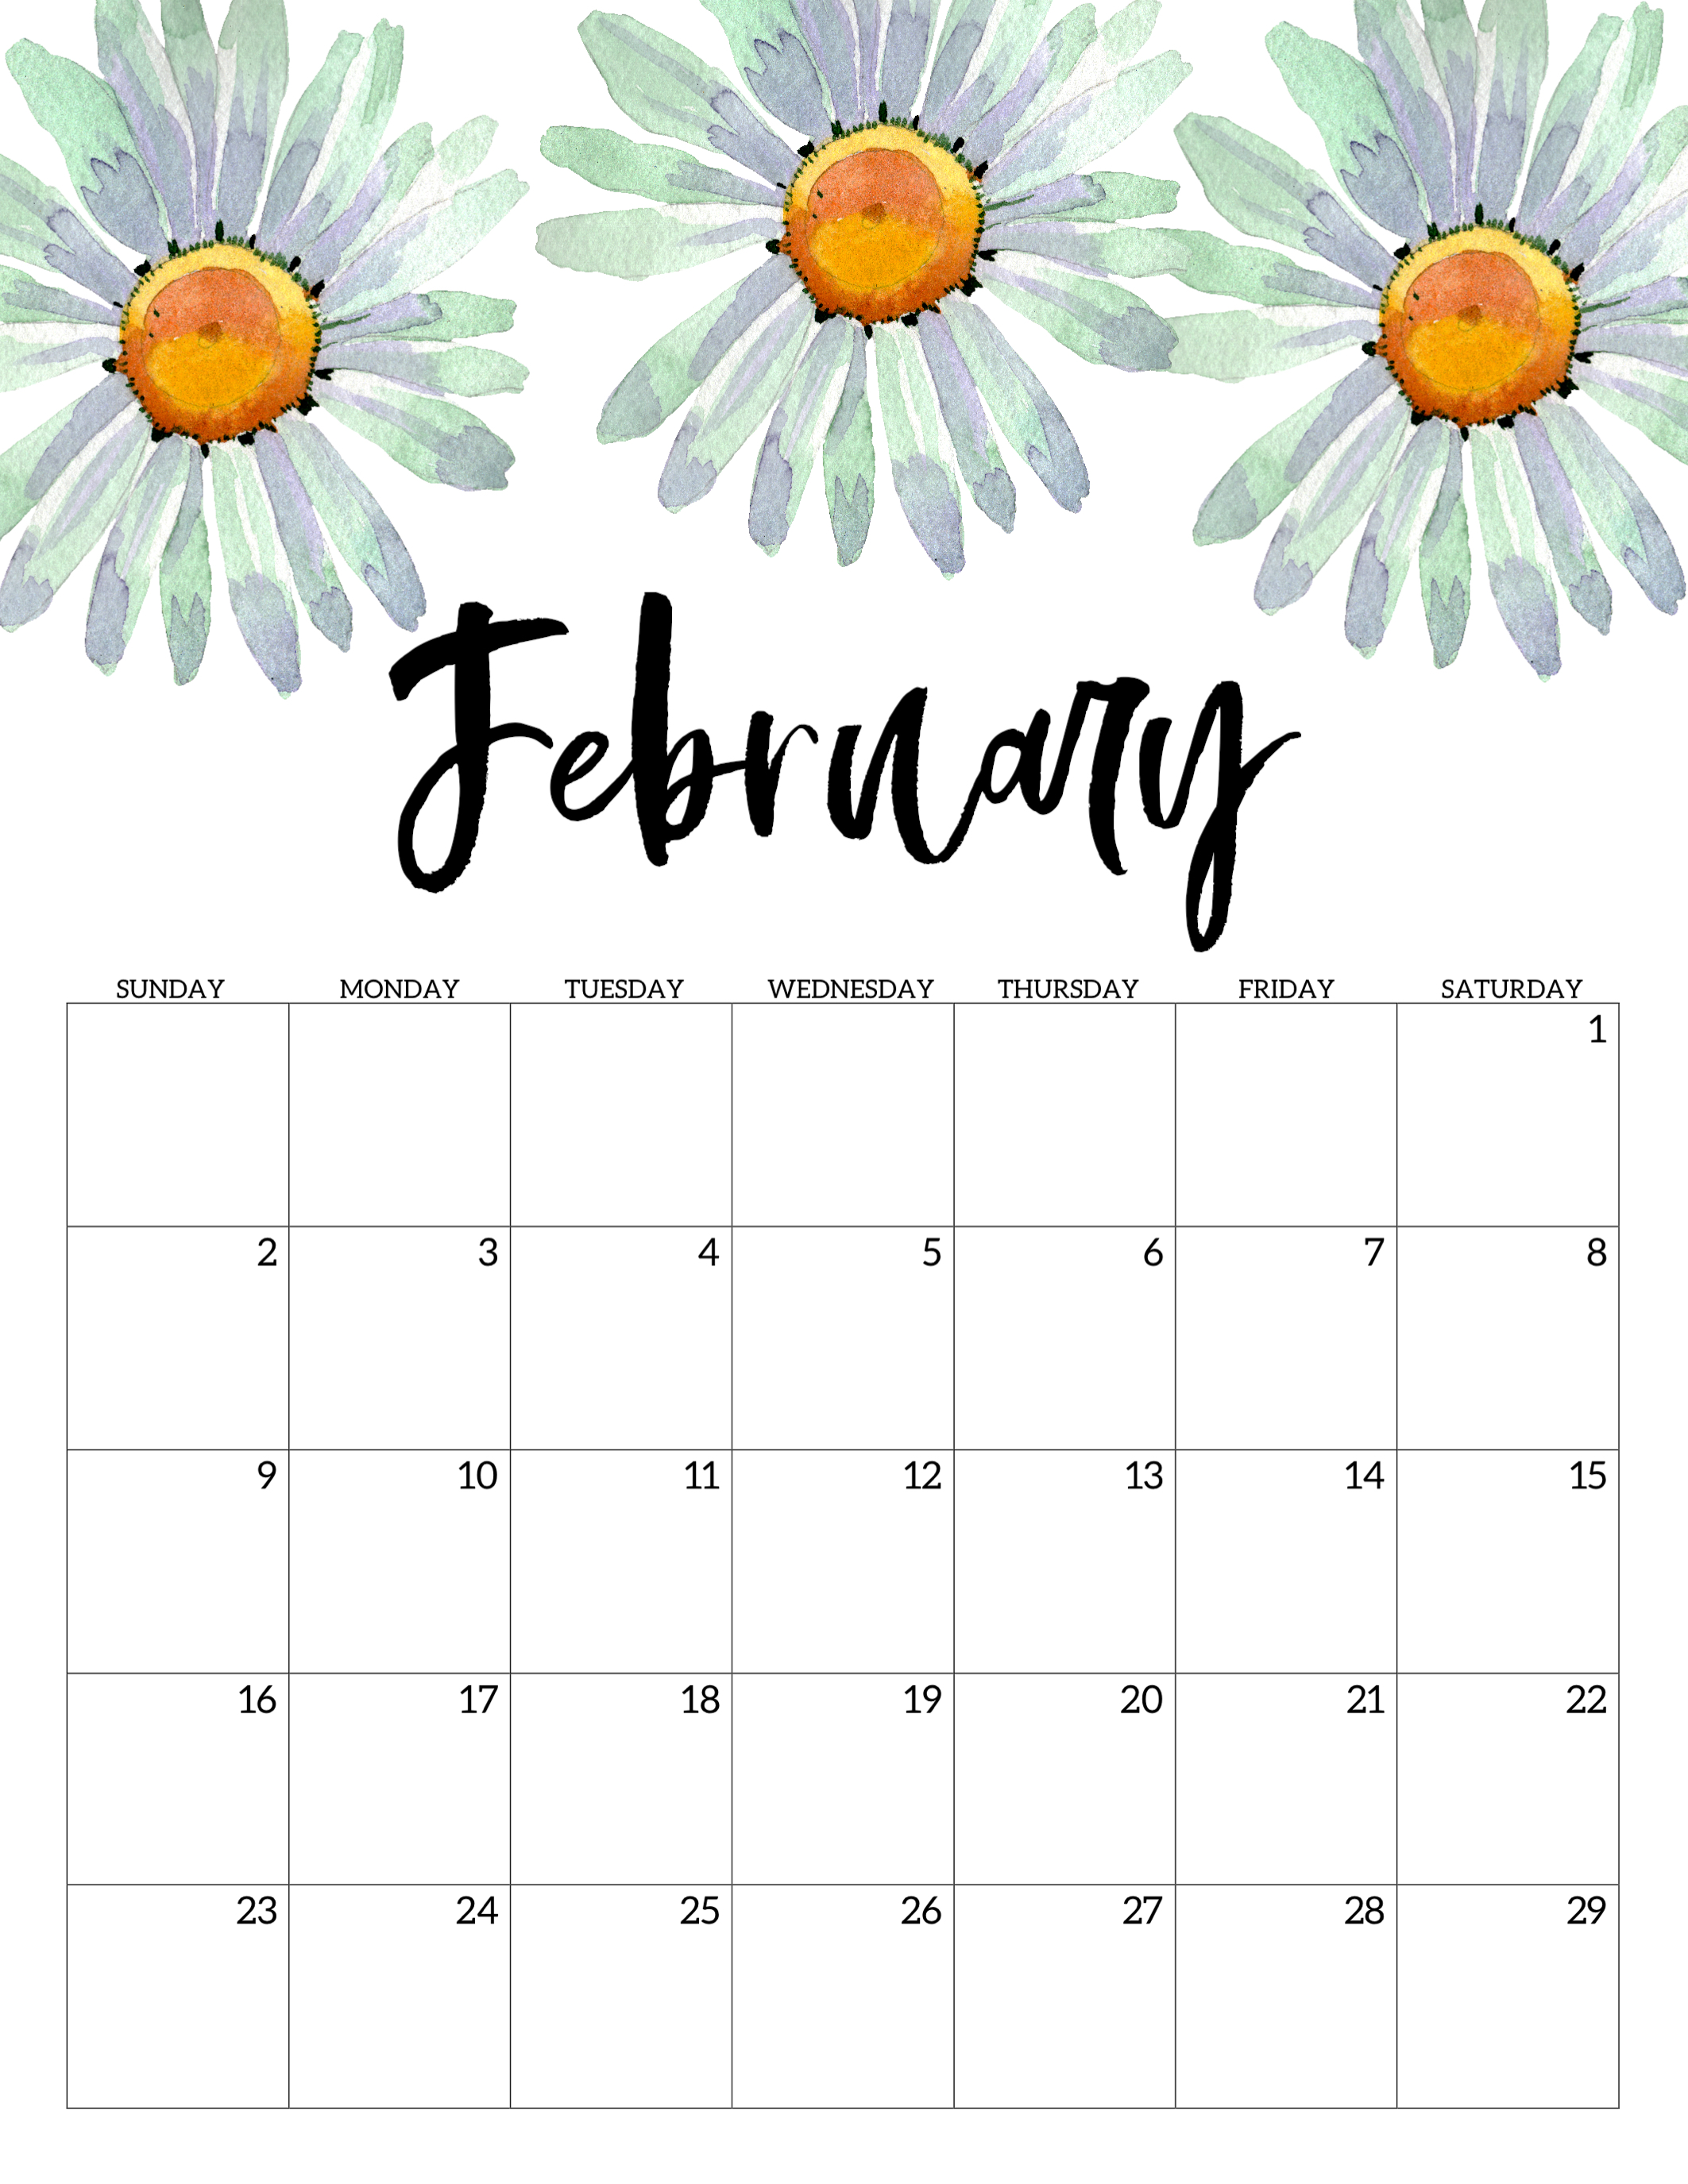 graphic about Free Printable 2020 Calendar named 2020 Free of charge Printable Calendar - Floral - Paper Path Structure